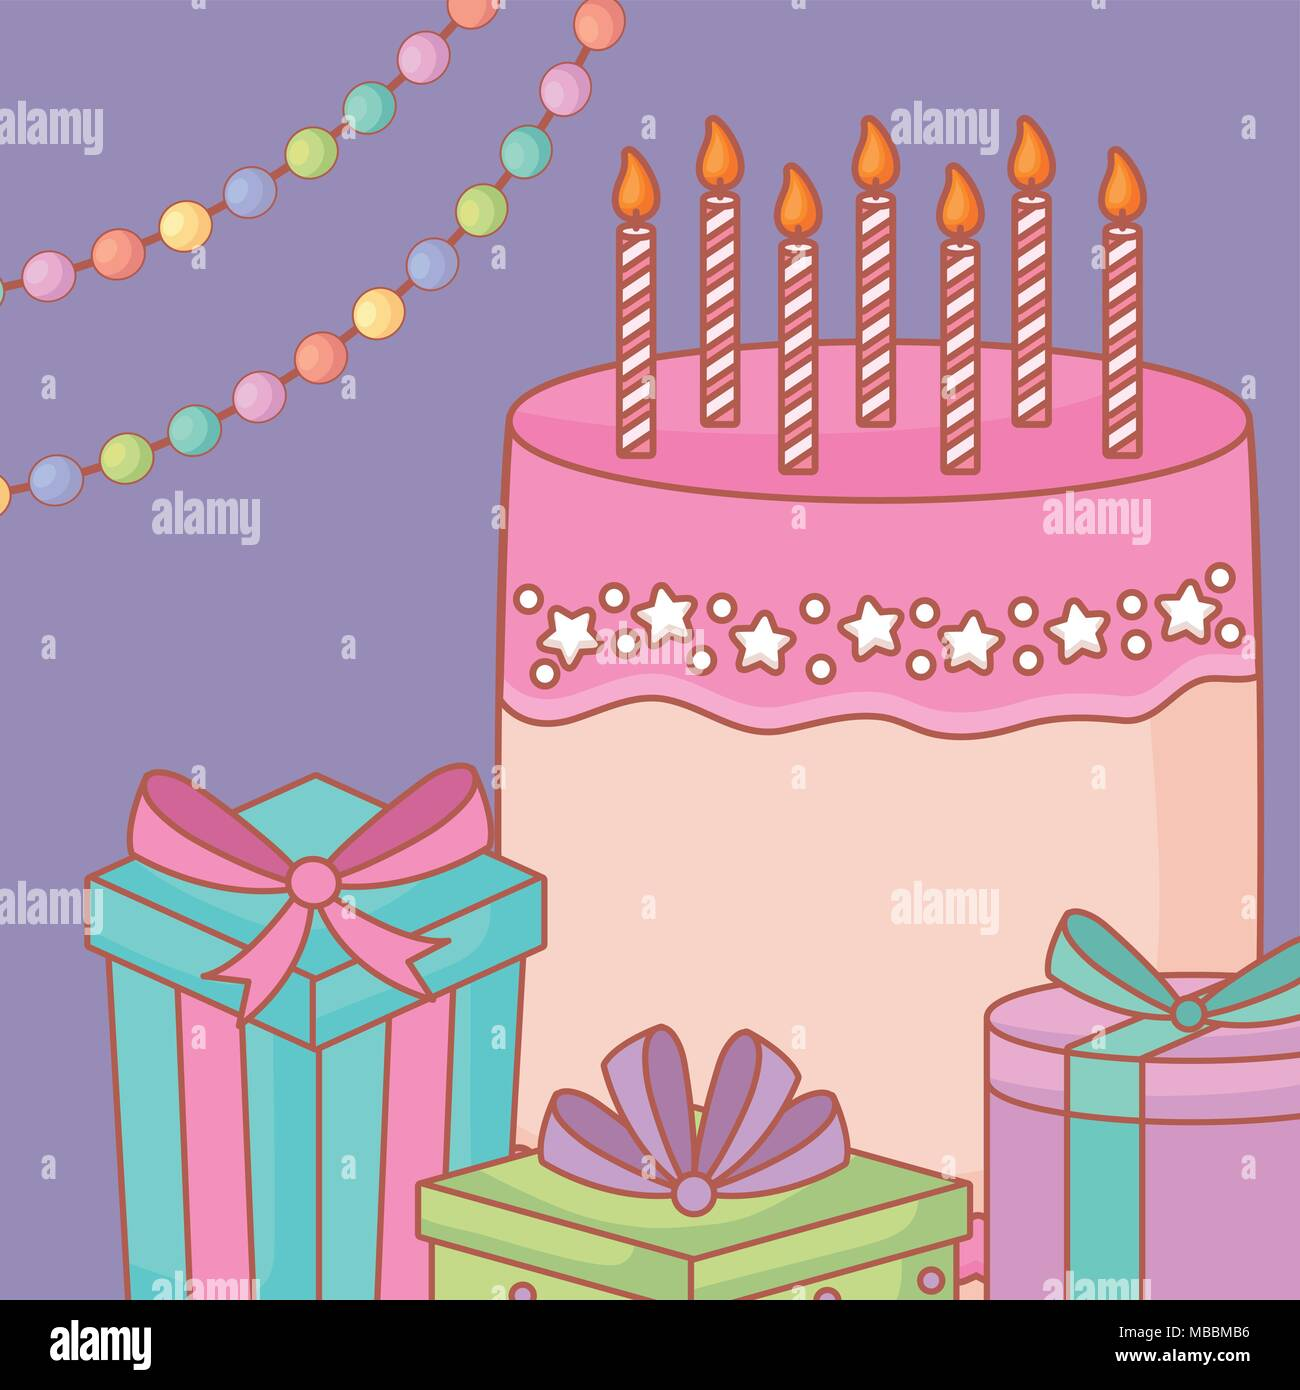 Birthday Cake With Candles And Gift Boxes Over Purple Background